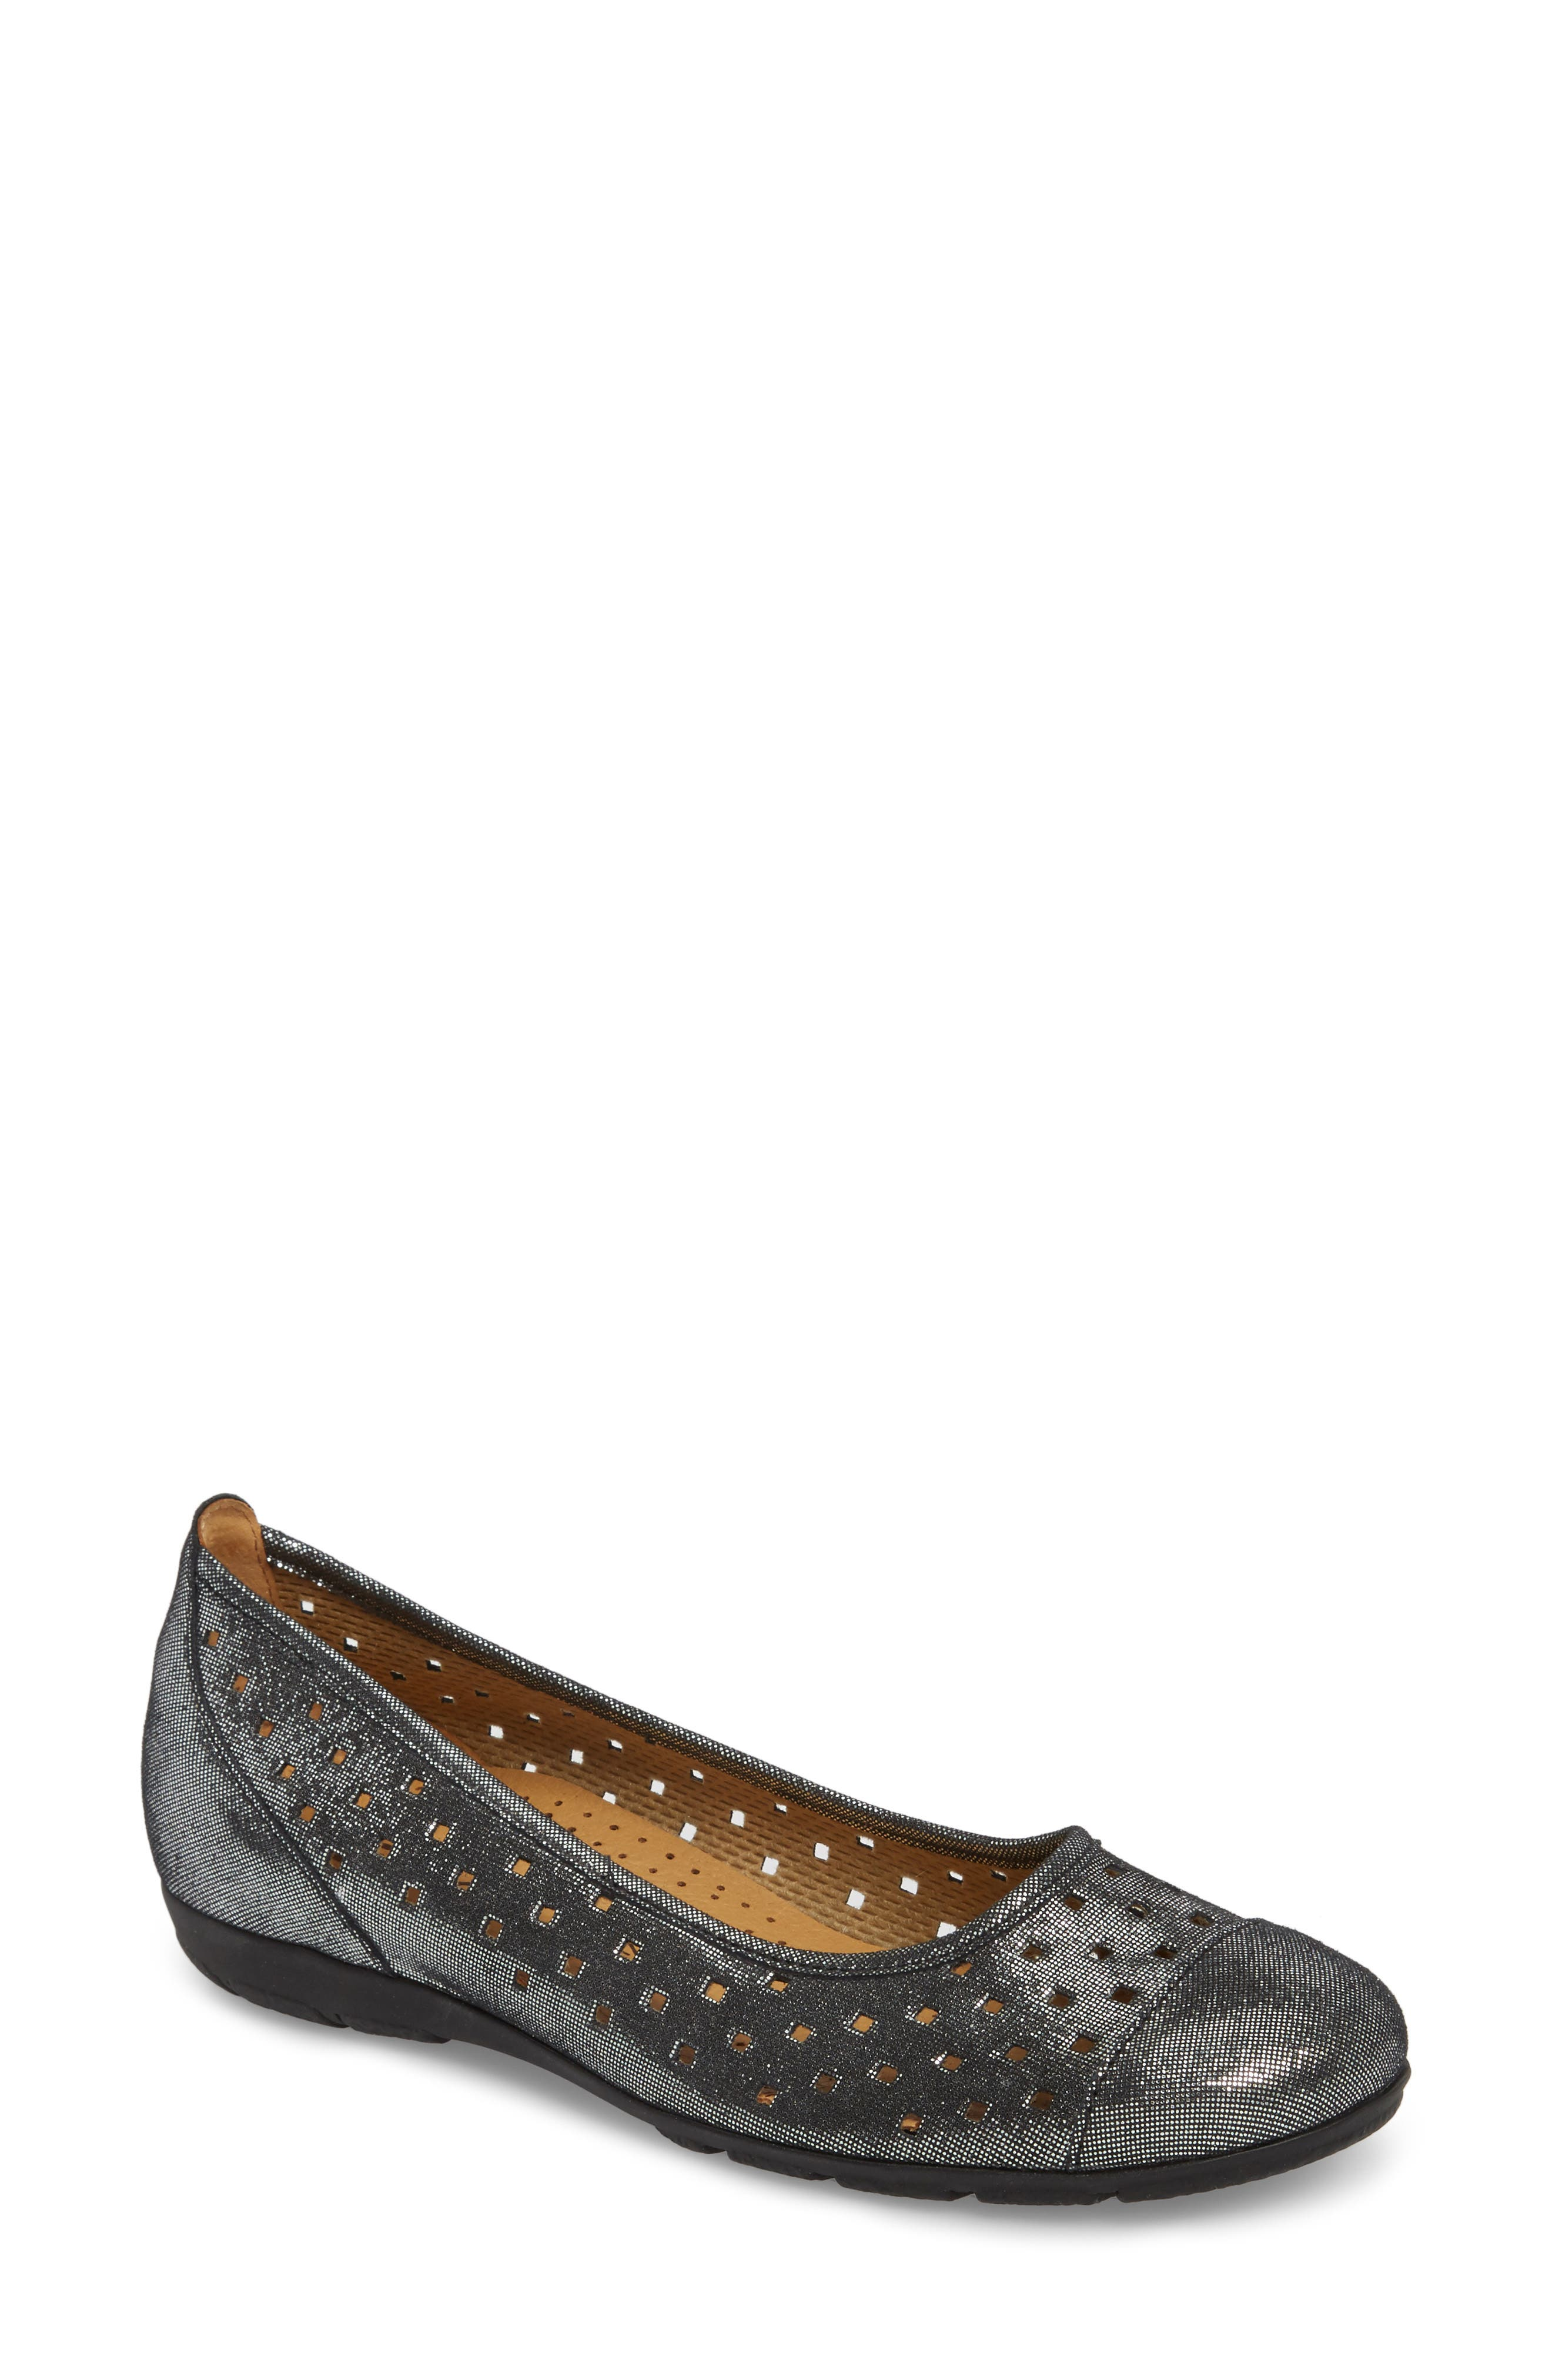 Perforated Ballet Flat,                             Main thumbnail 1, color,                             BLACK METALLIC LEATHER